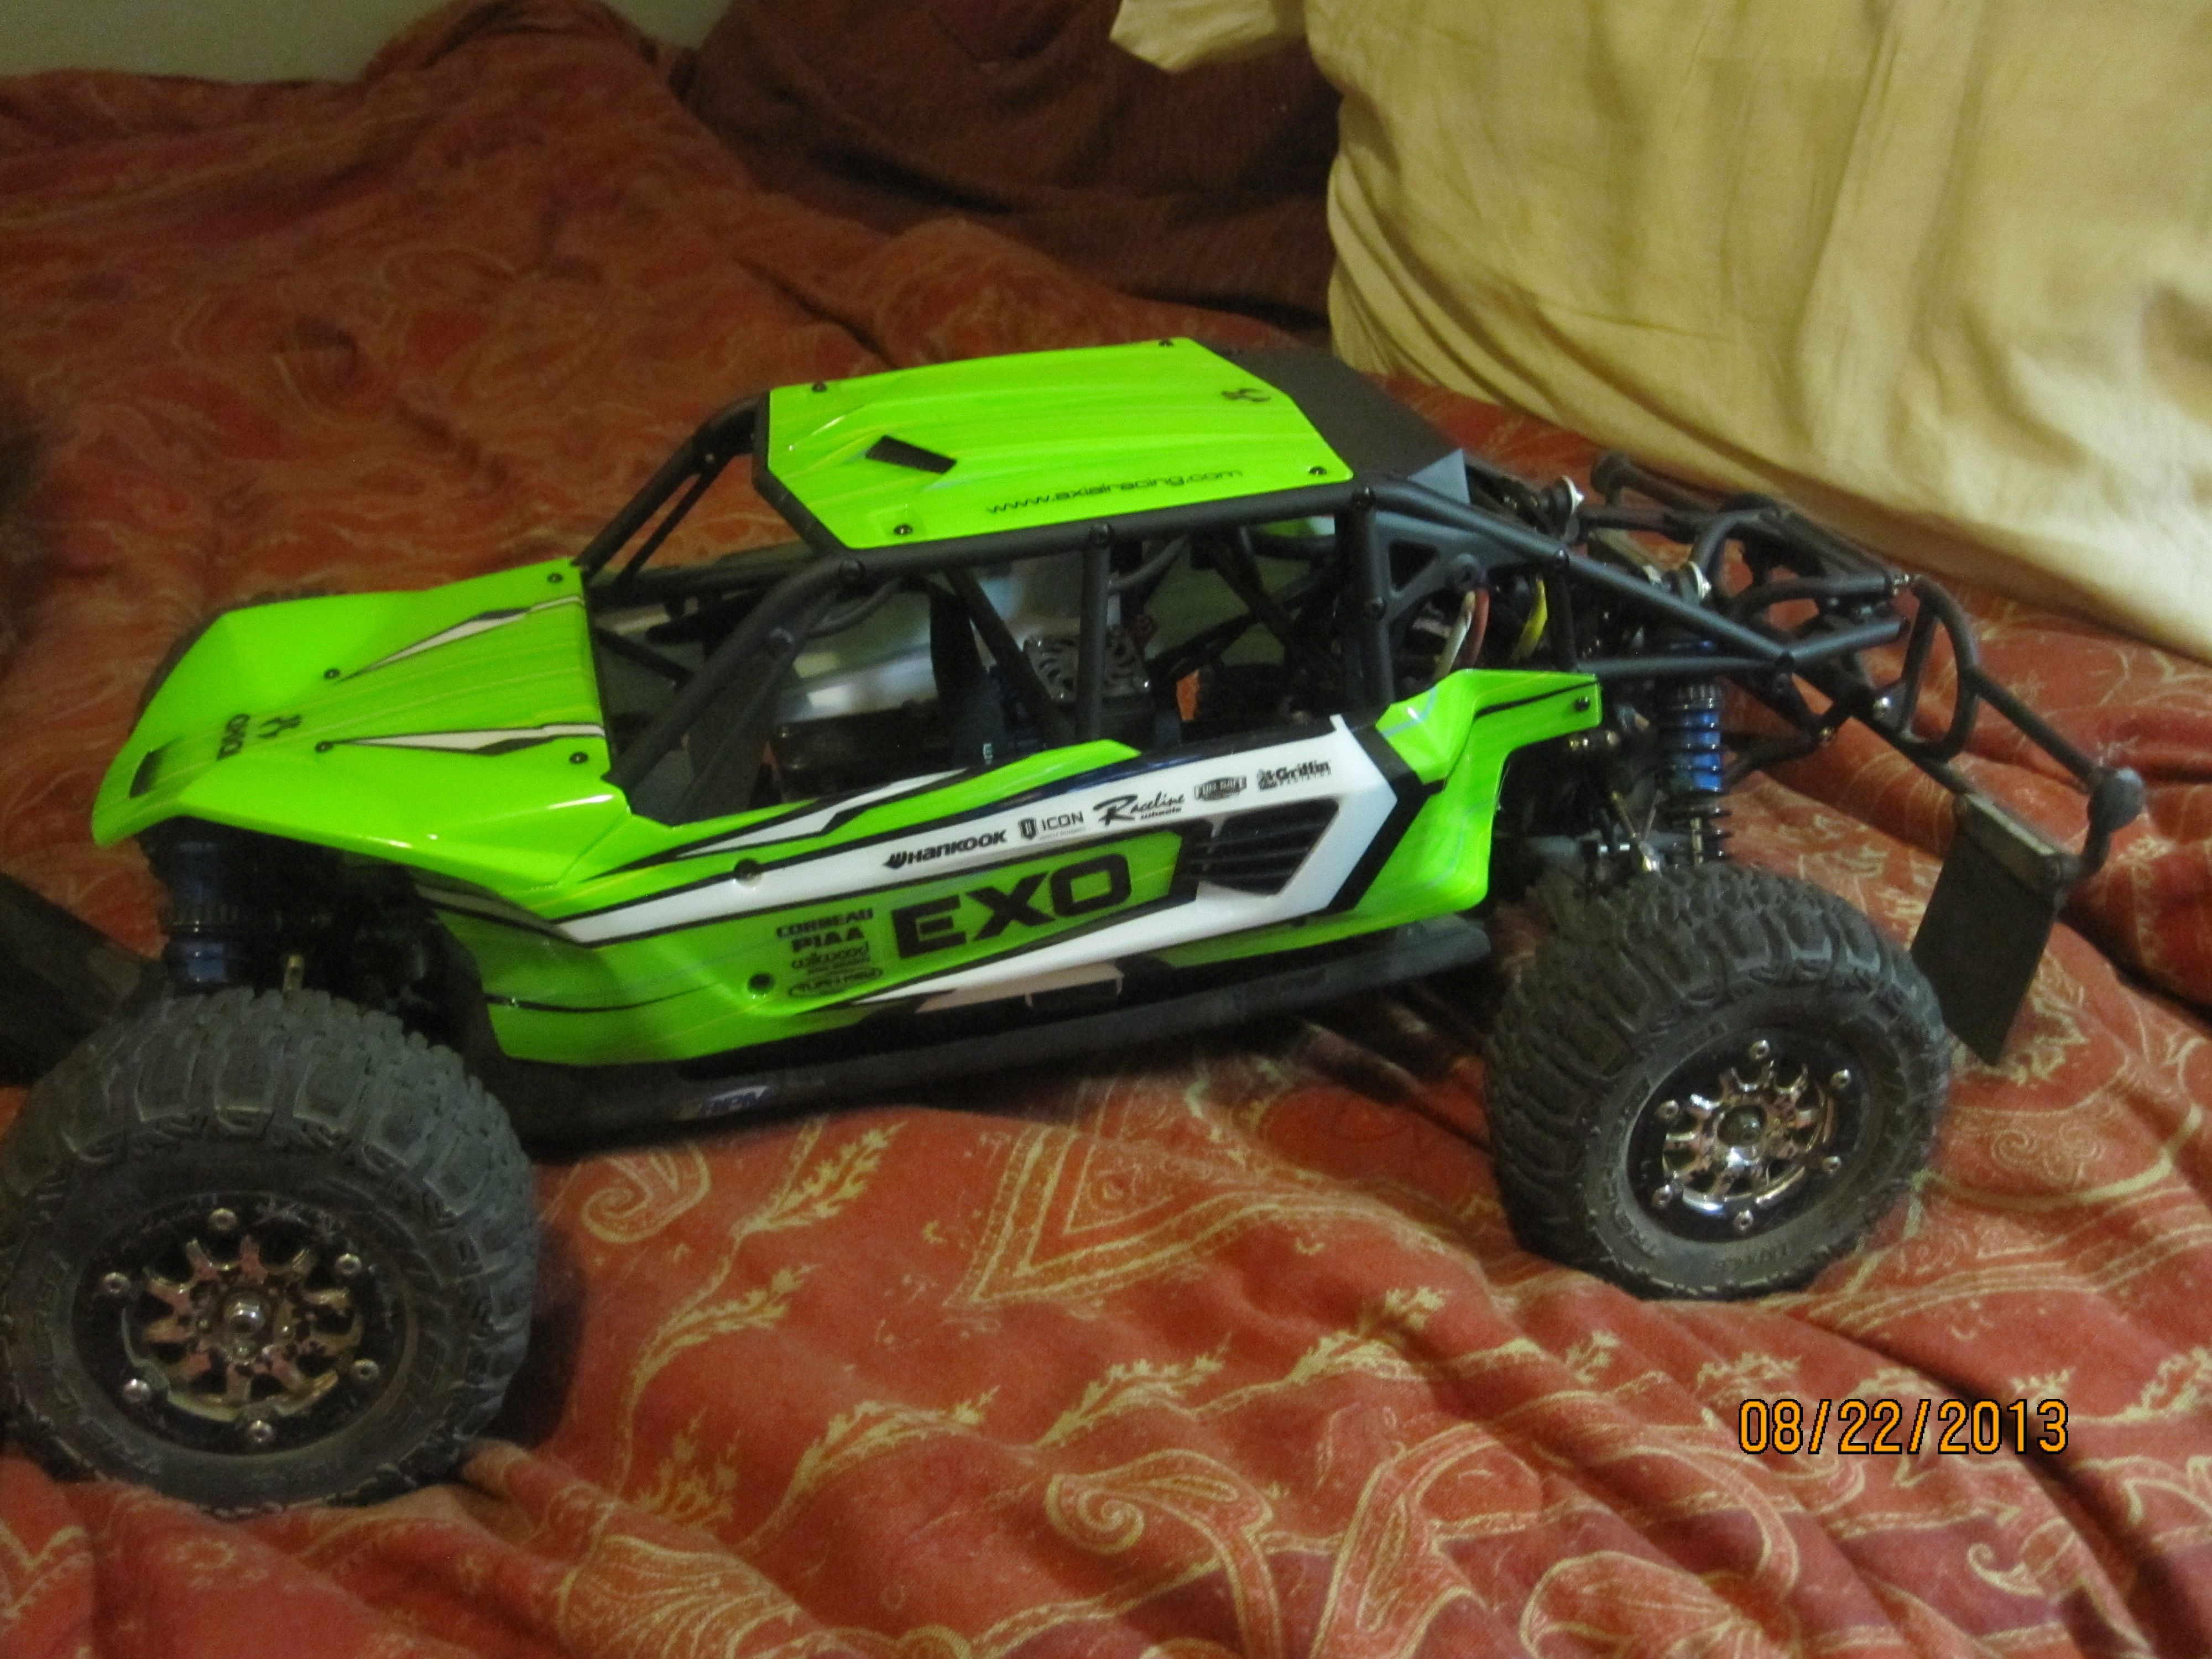 hight resolution of i wanted a roll cage so i got a body from an entirely different rc and modified it to fit i think it came out pretty cool lookin lol